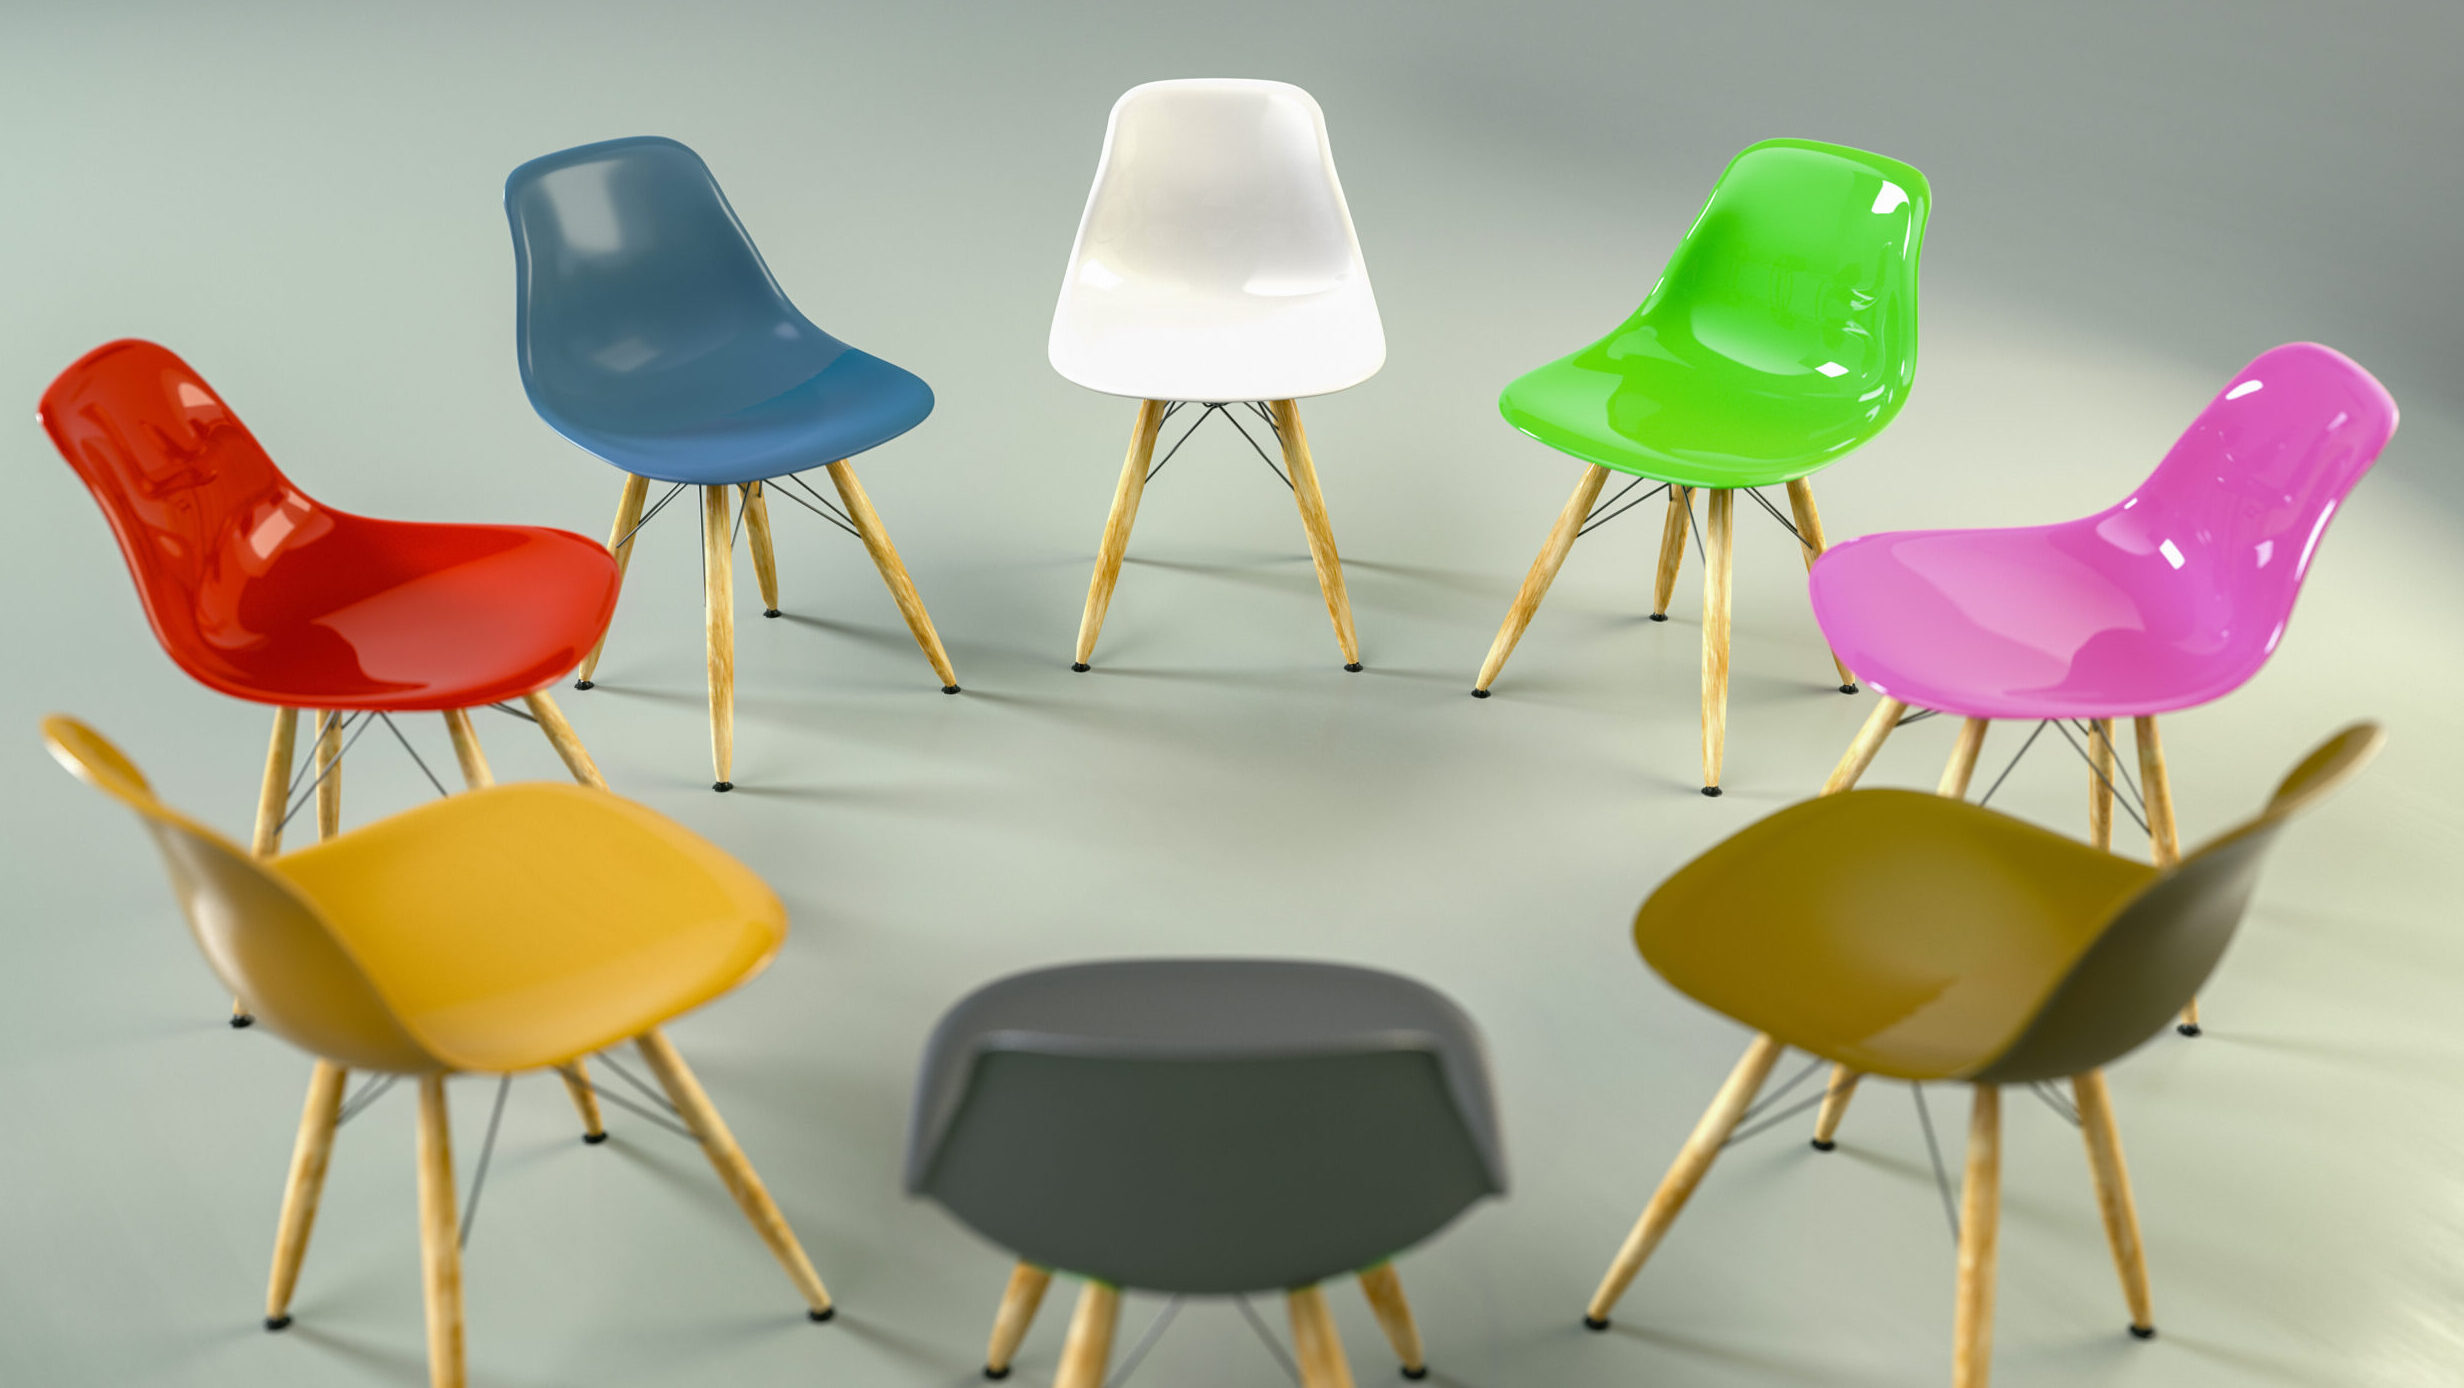 A circle of chairs in different colors